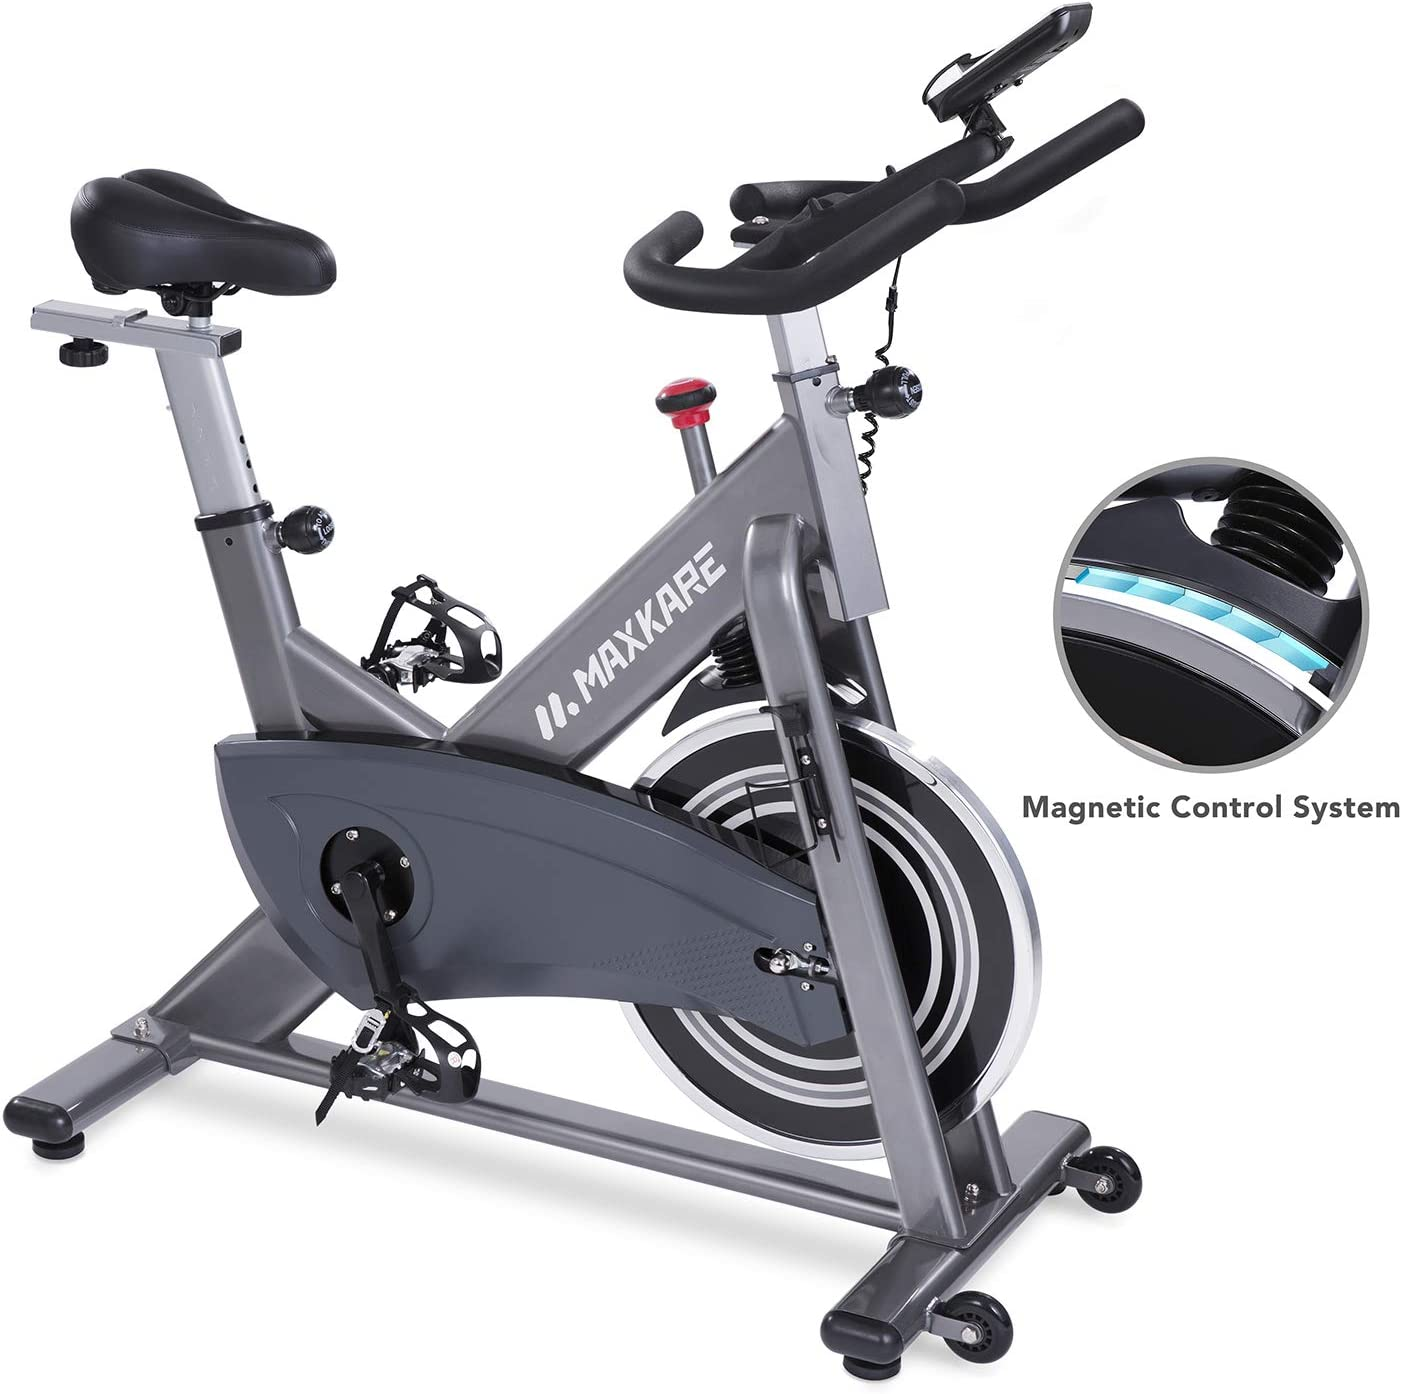 Maxkare Magnetic Exercise Bike Belt Drive Stationary Indoor Cycling Bike with High Weight Capacity Adjustable Magnetic Resistance w LCD Monitor Tablet Holder Gray